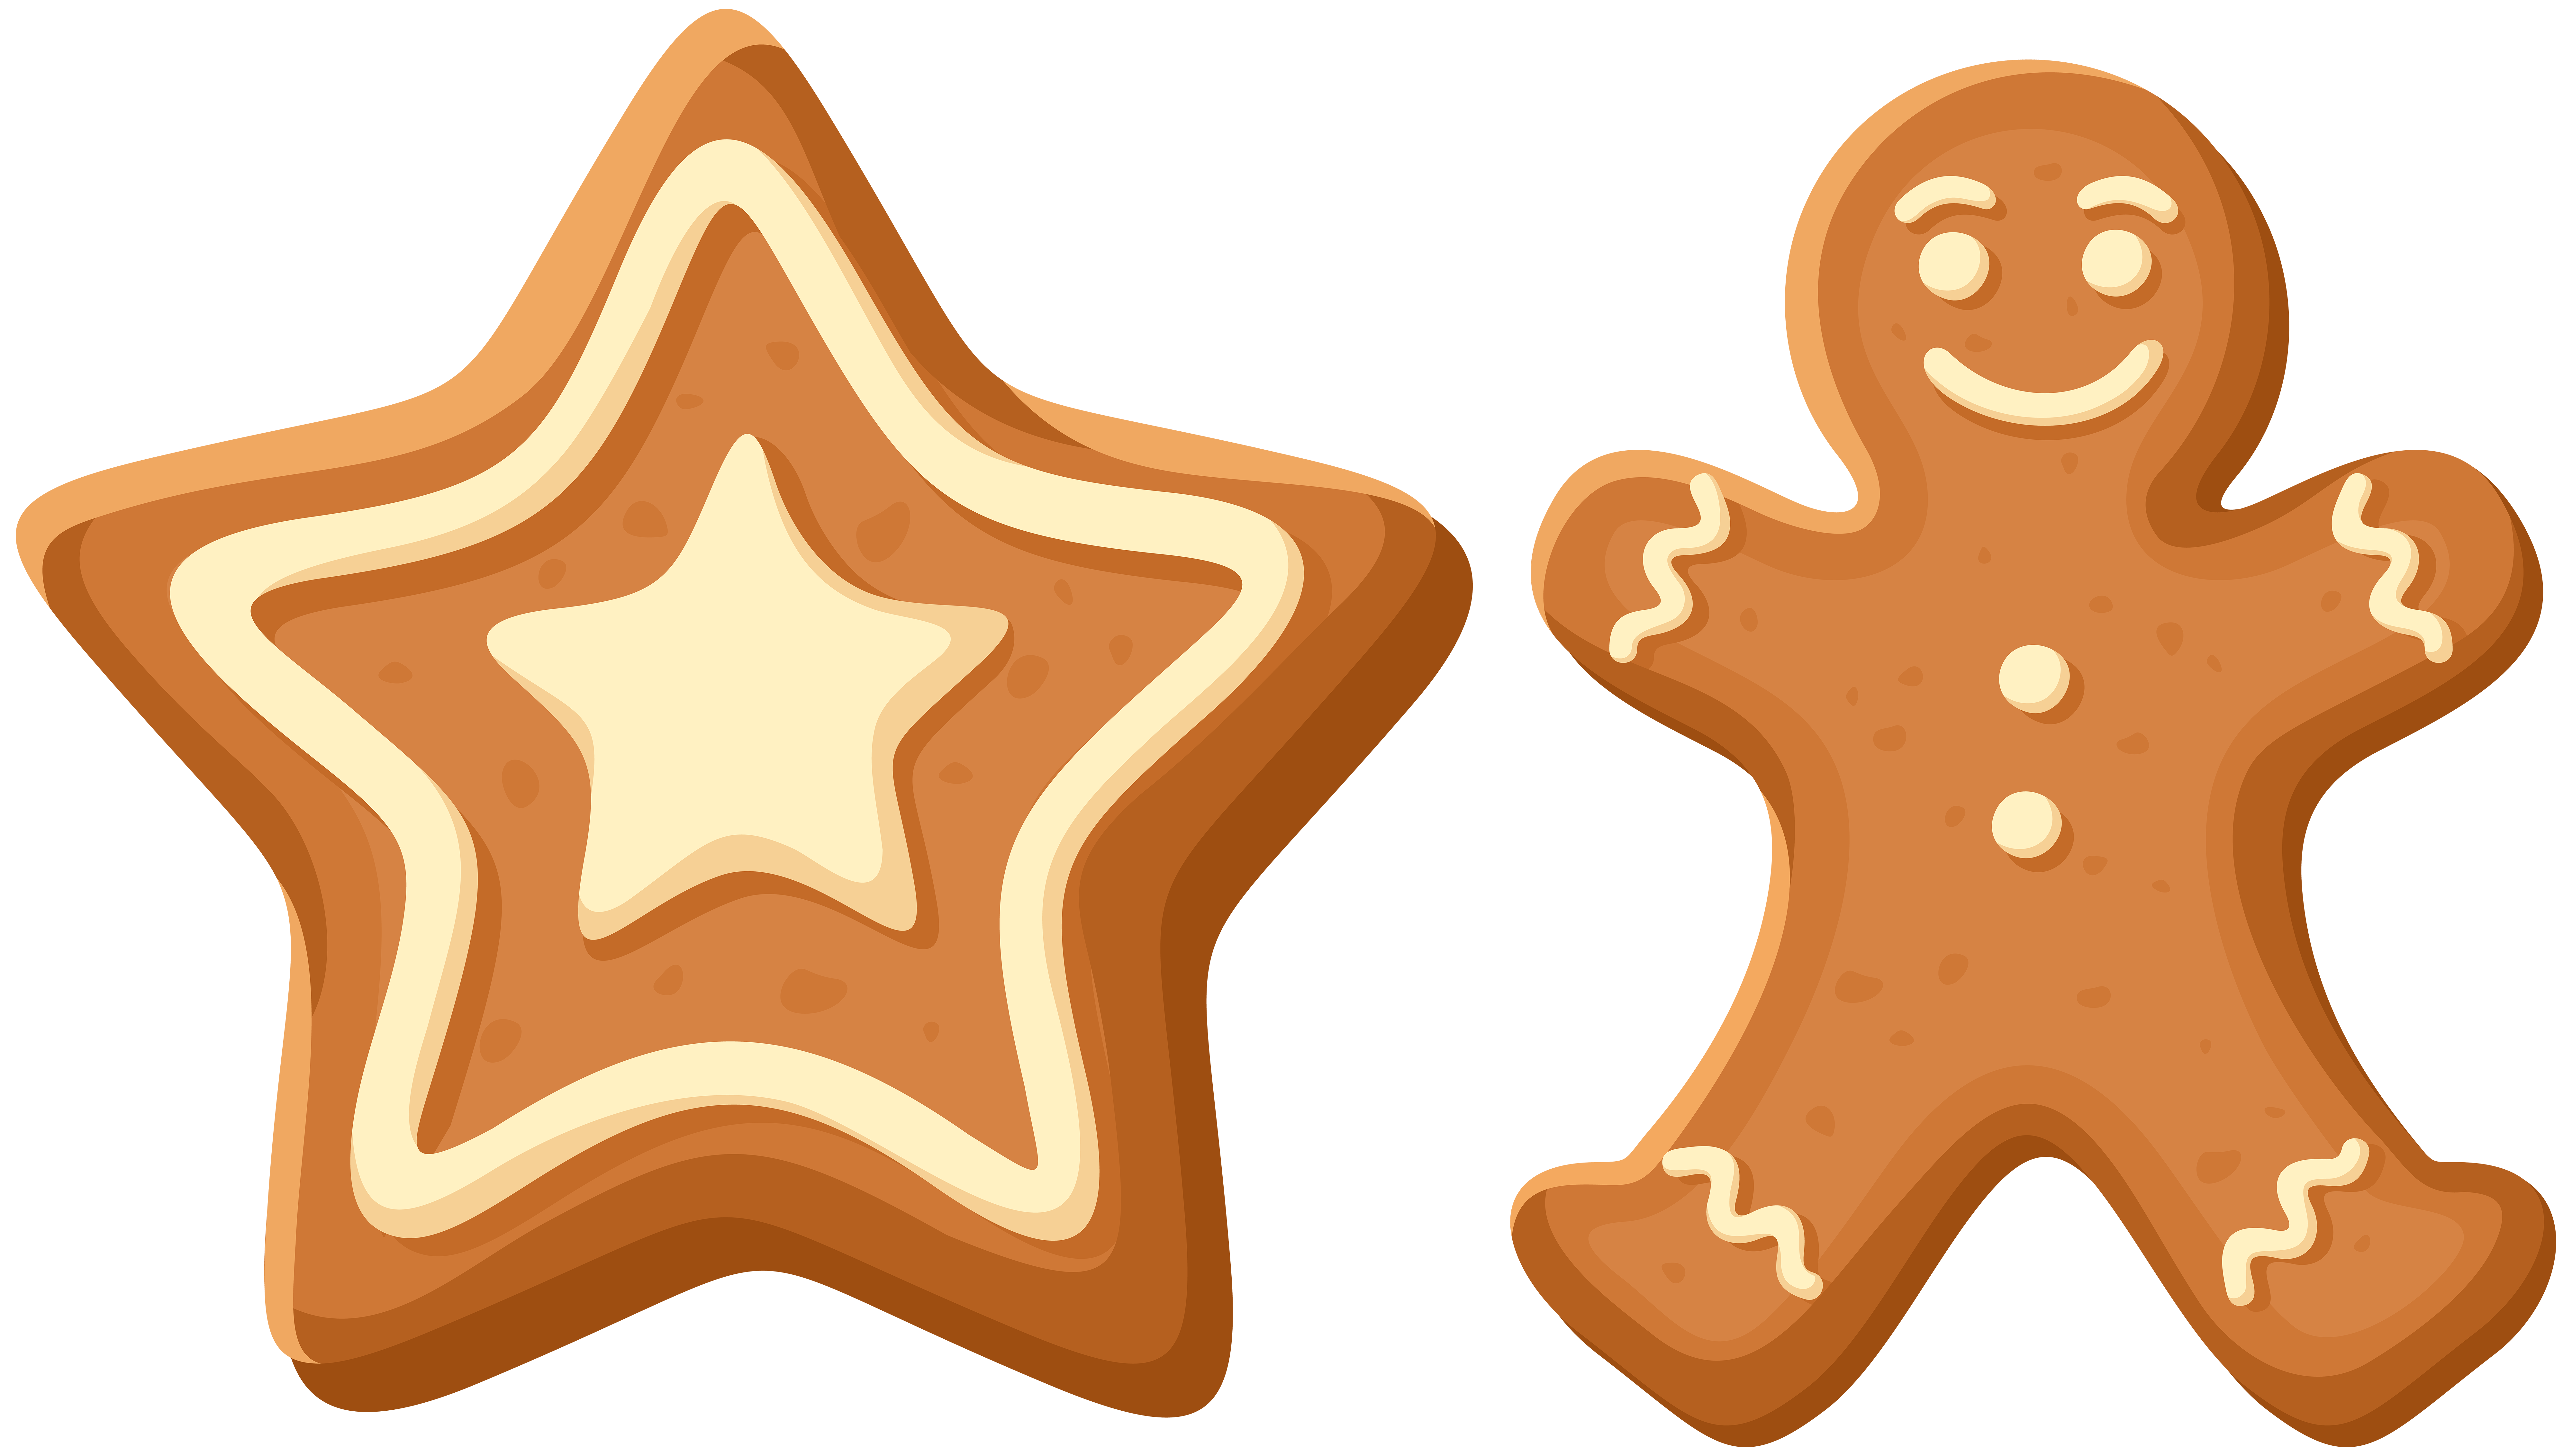 Gingerbread cookie clipart vector library library Christmas Gingerbread Cookies PNG Clip Art | Gallery Yopriceville ... vector library library